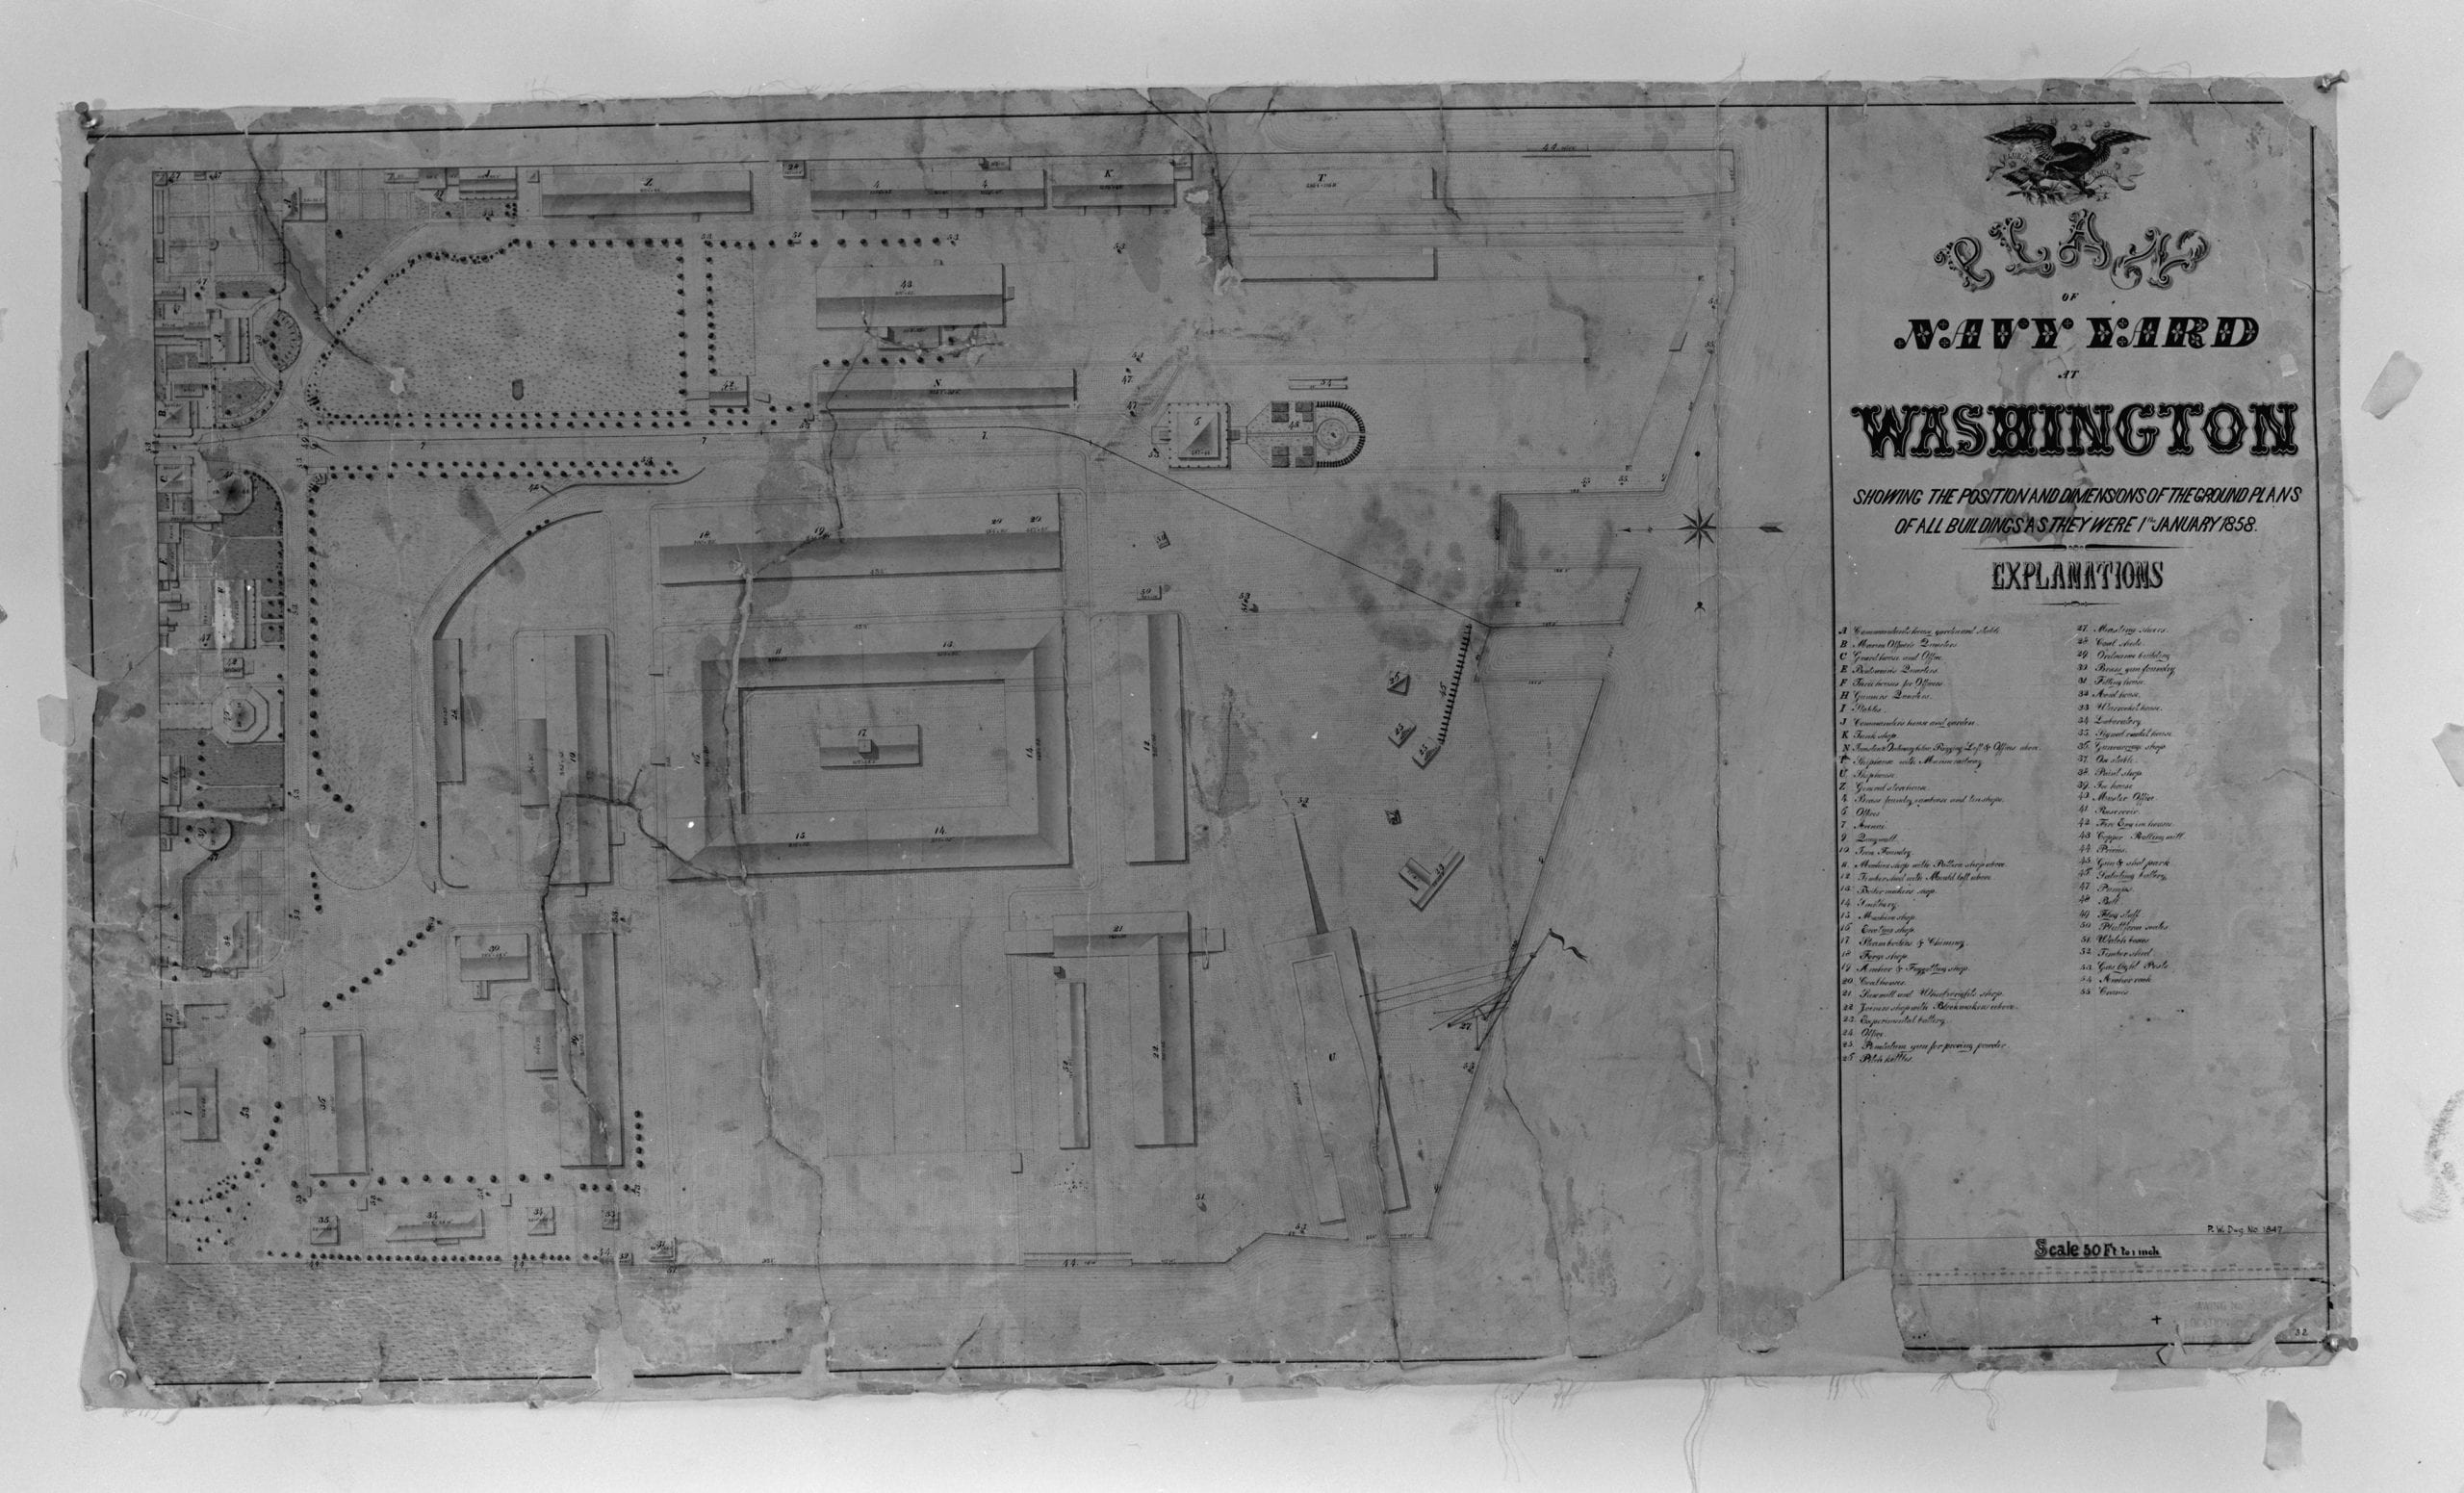 1858 plan of the Navy Yard